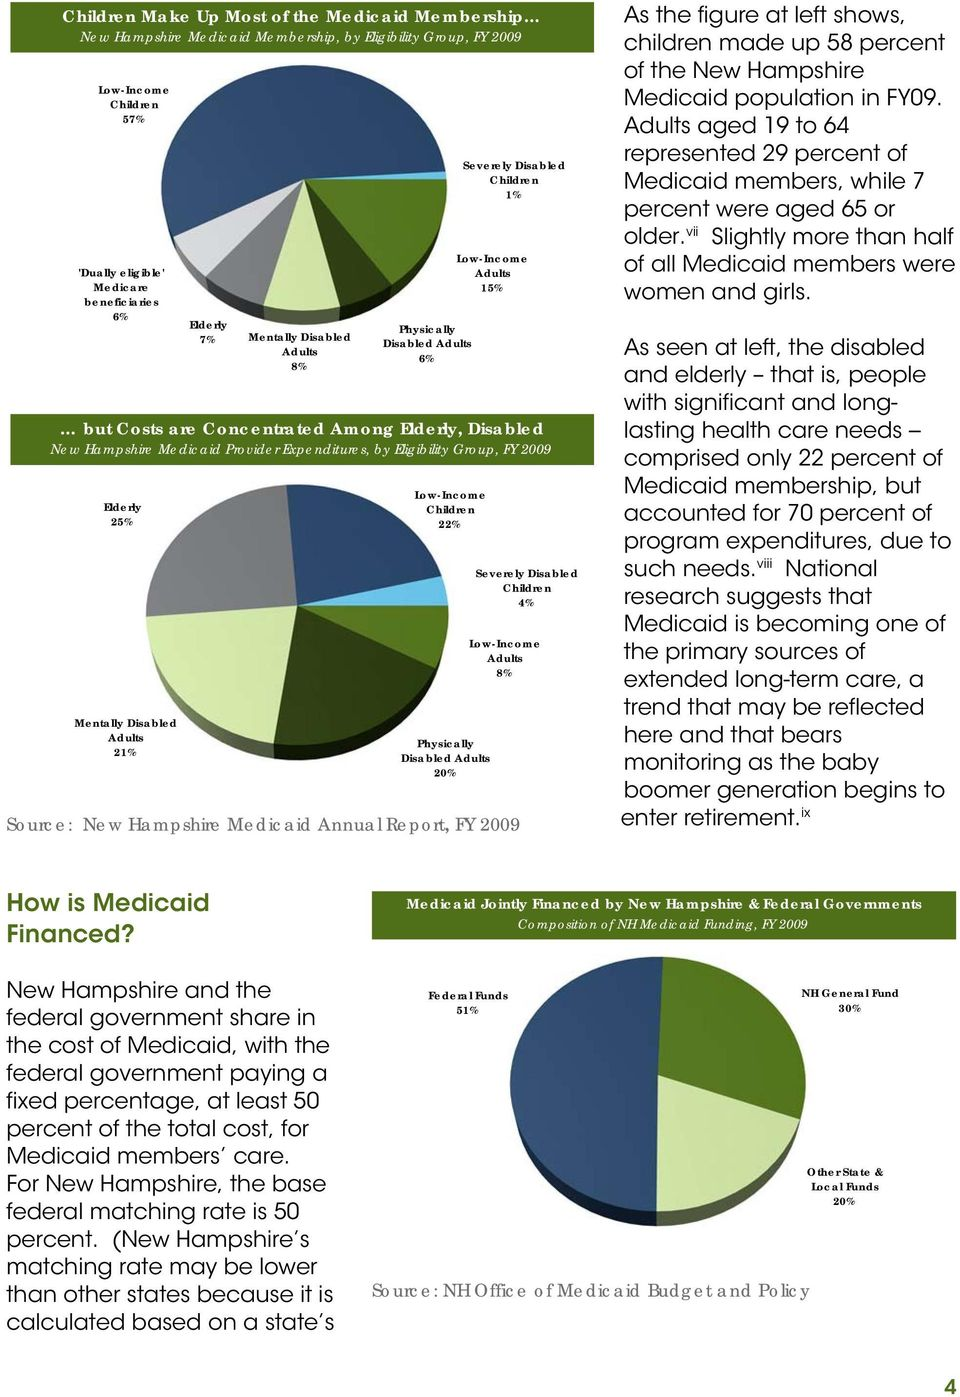 Disabled 20% Severely Disabled 1% 8% Source: New Hampshire Medicaid Annual Report, FY 2009 Severely Disabled 4% As the figure at left shows, children made up 58 percent of the New Hampshire Medicaid